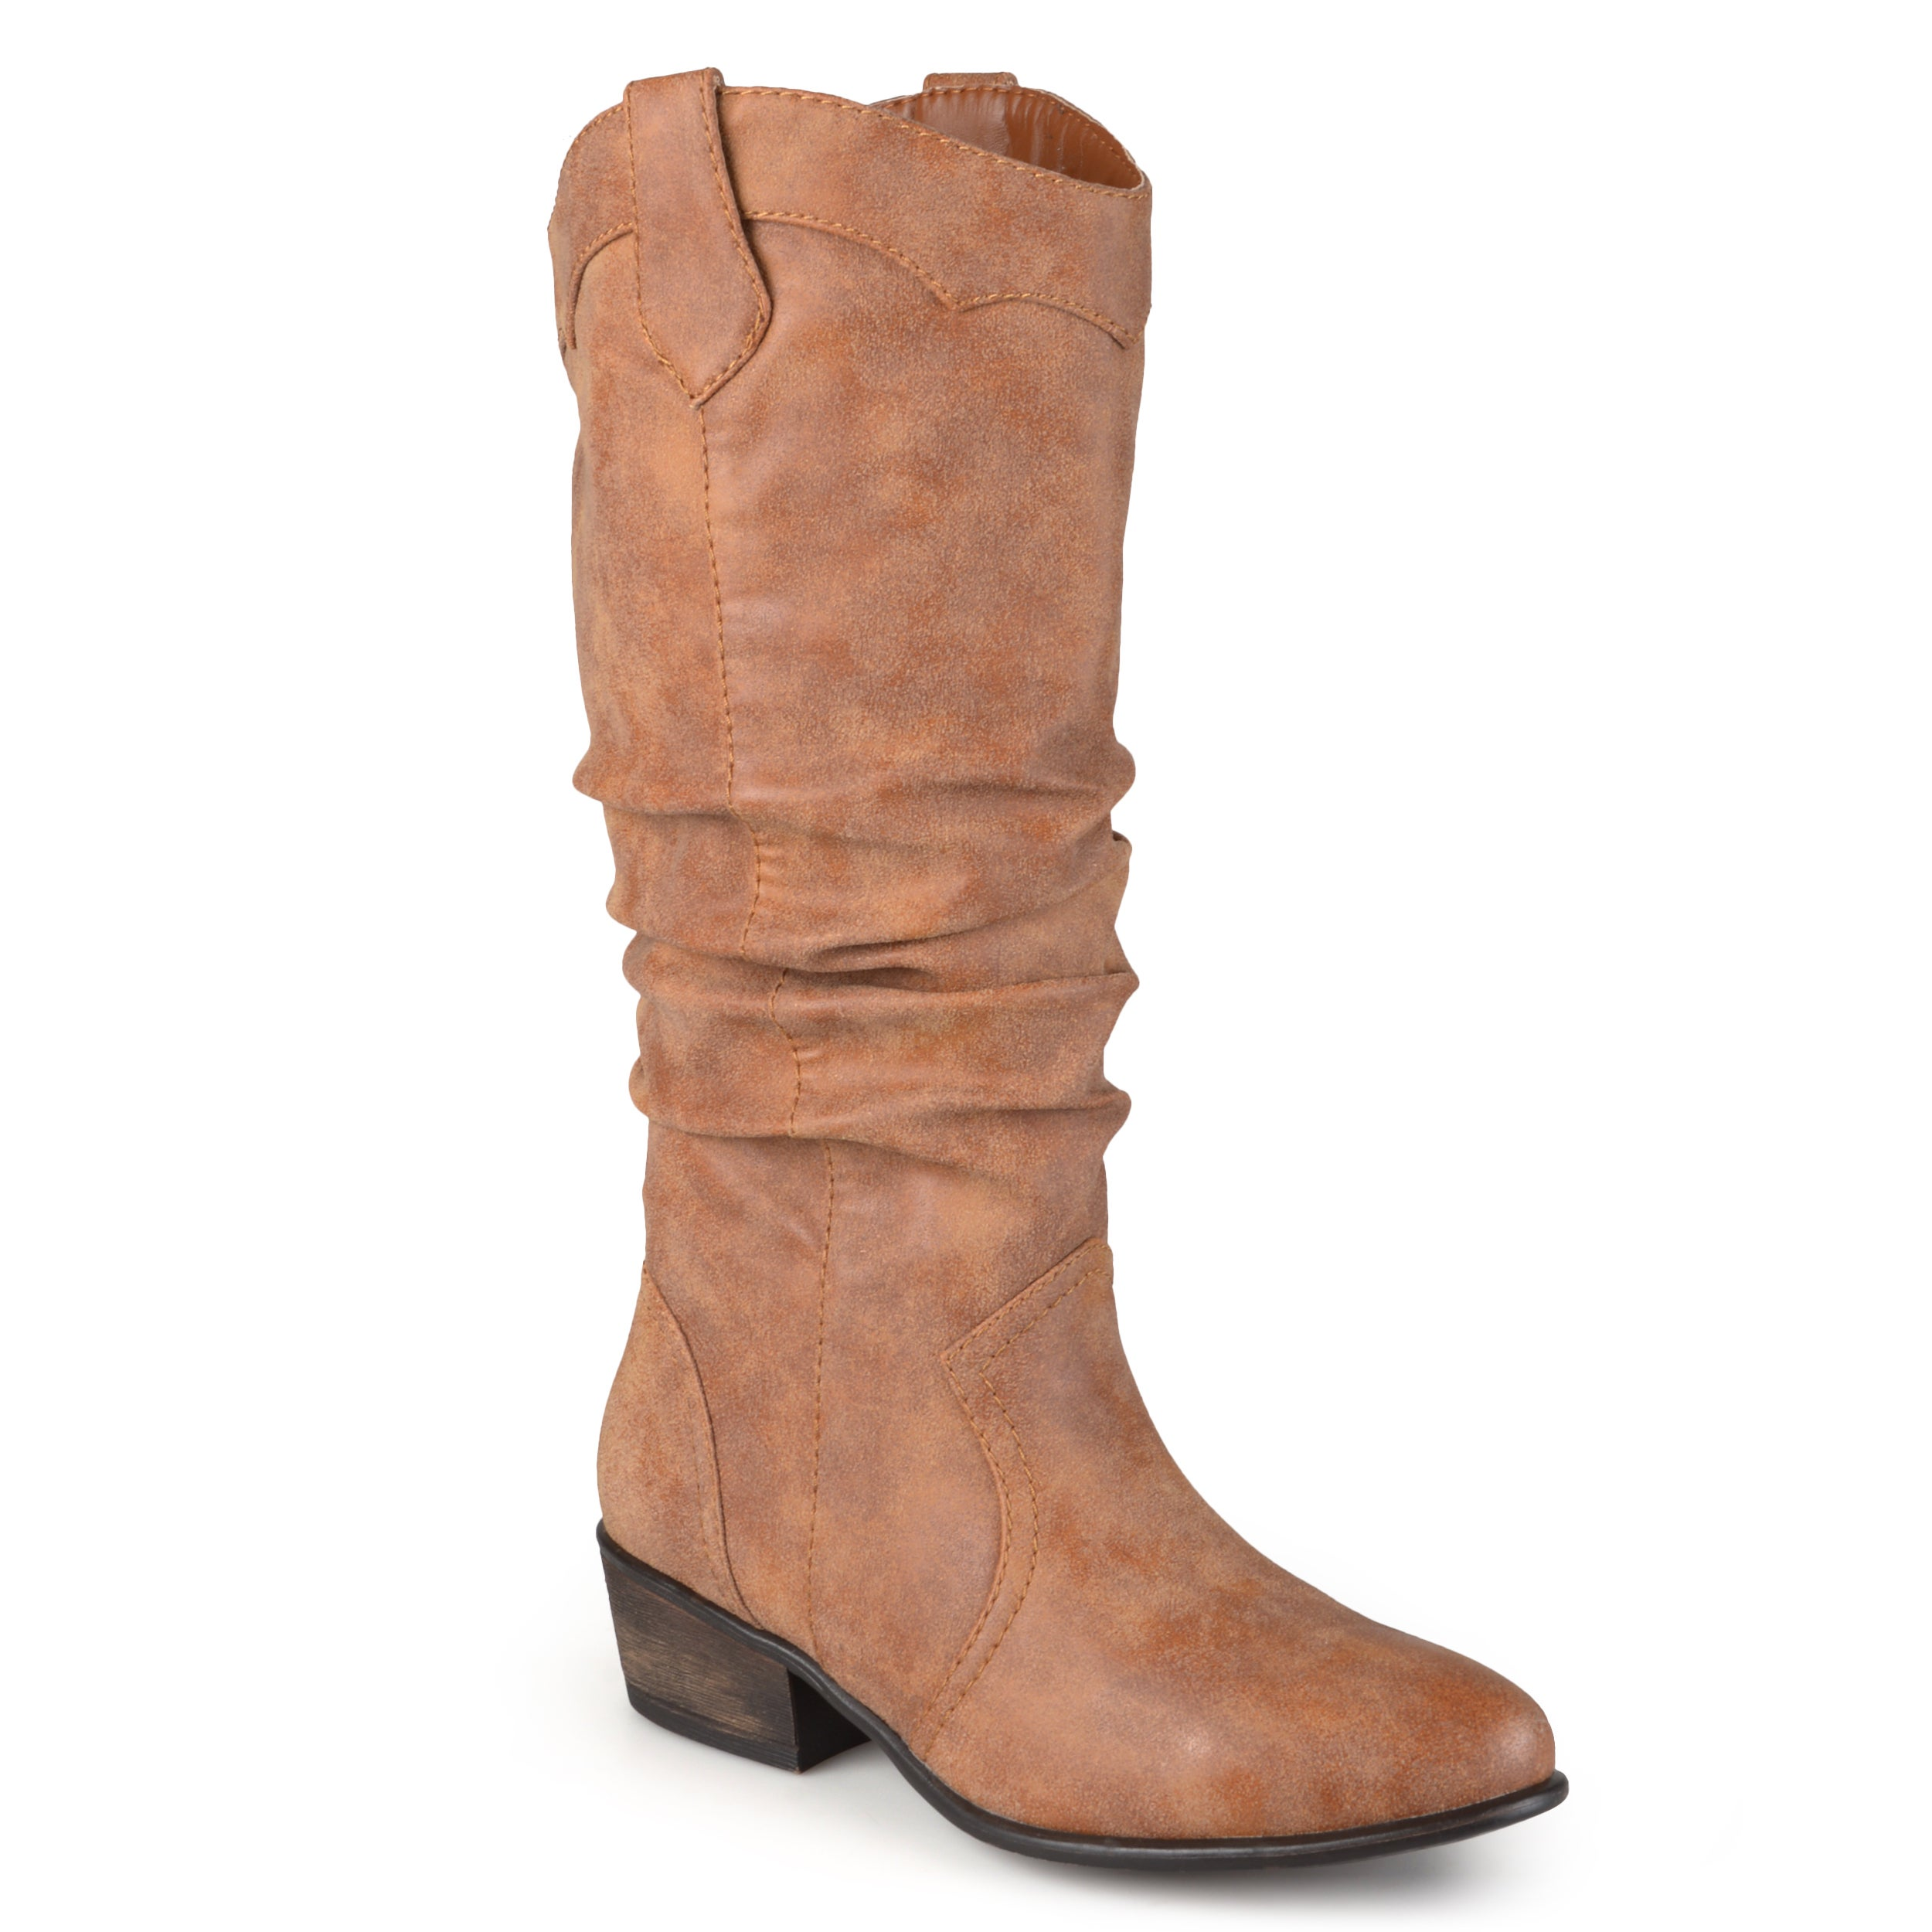 Journee collection Women's 'Drover' Regular and Wide-calf...